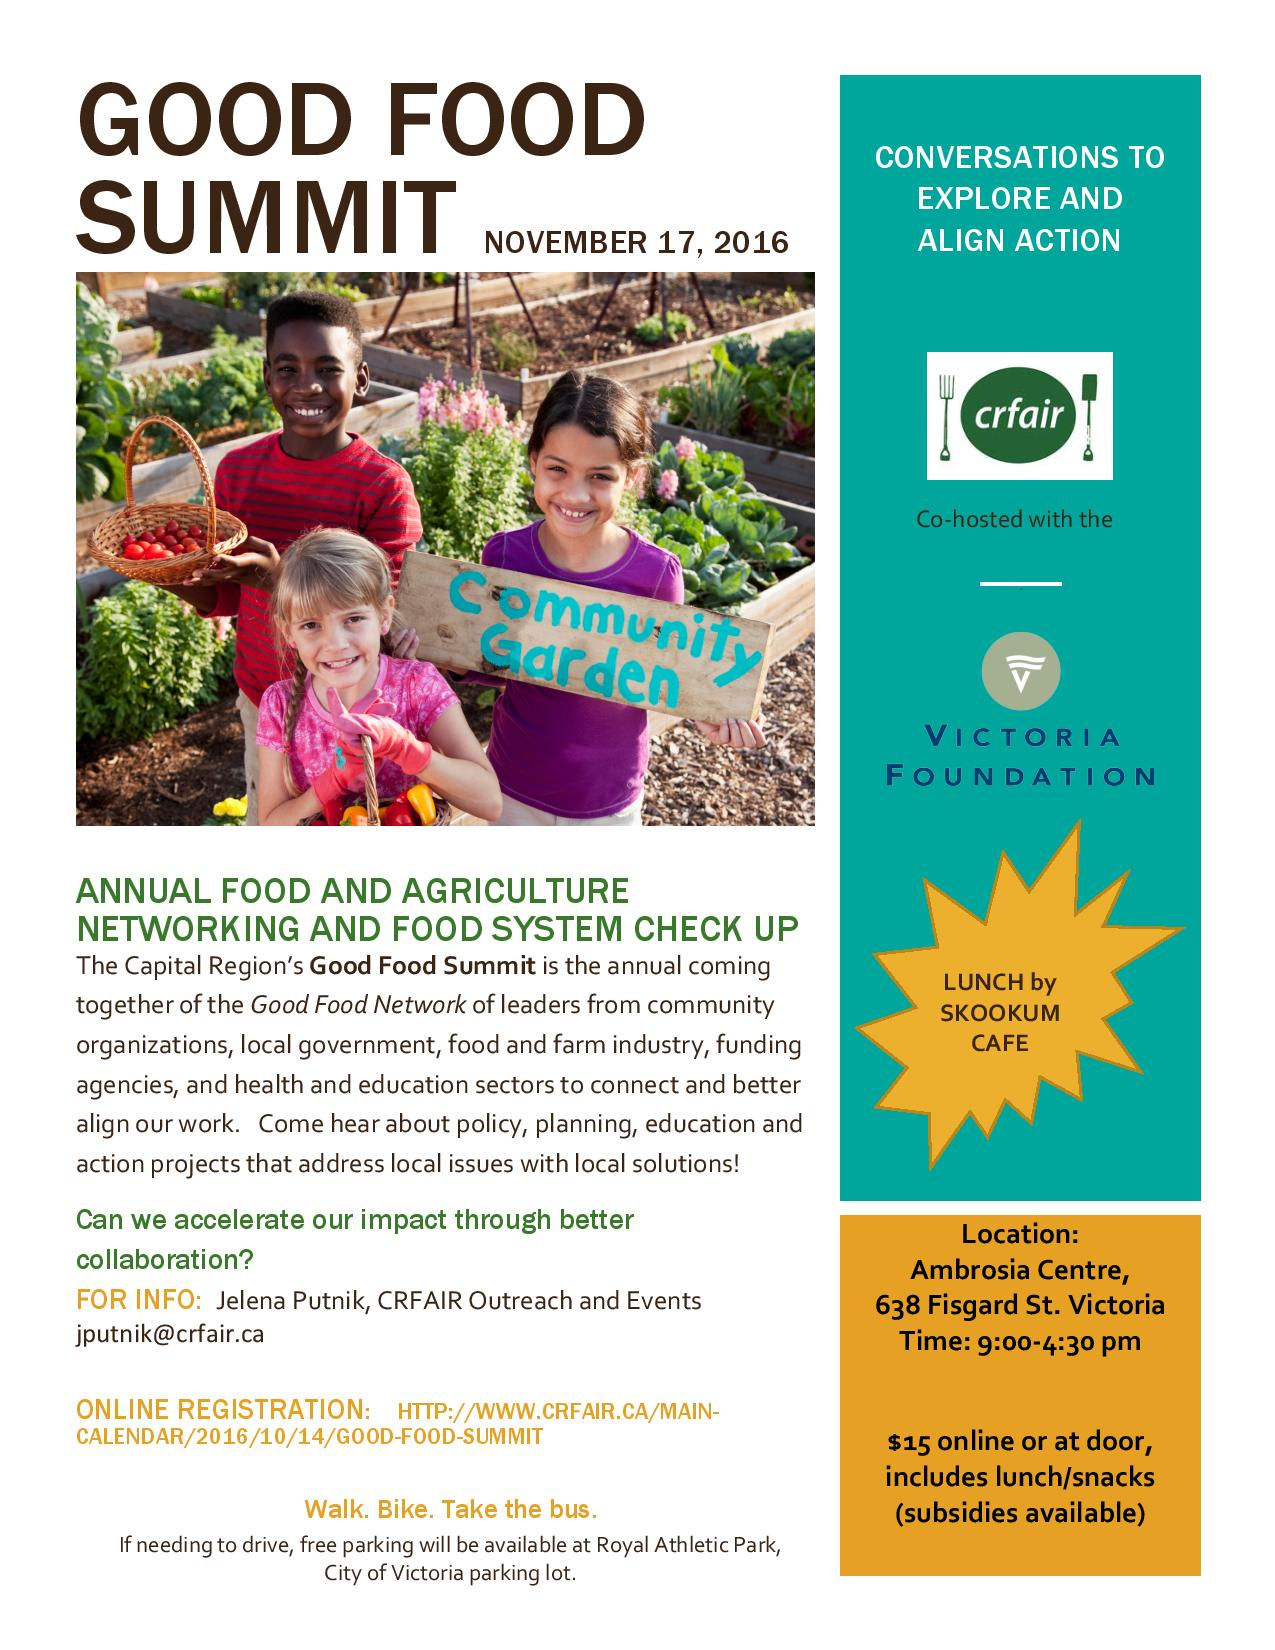 The Capital Regions Good Food Summit Is Annual Coming Together Of Network Leaders From Community Organizations Local Government